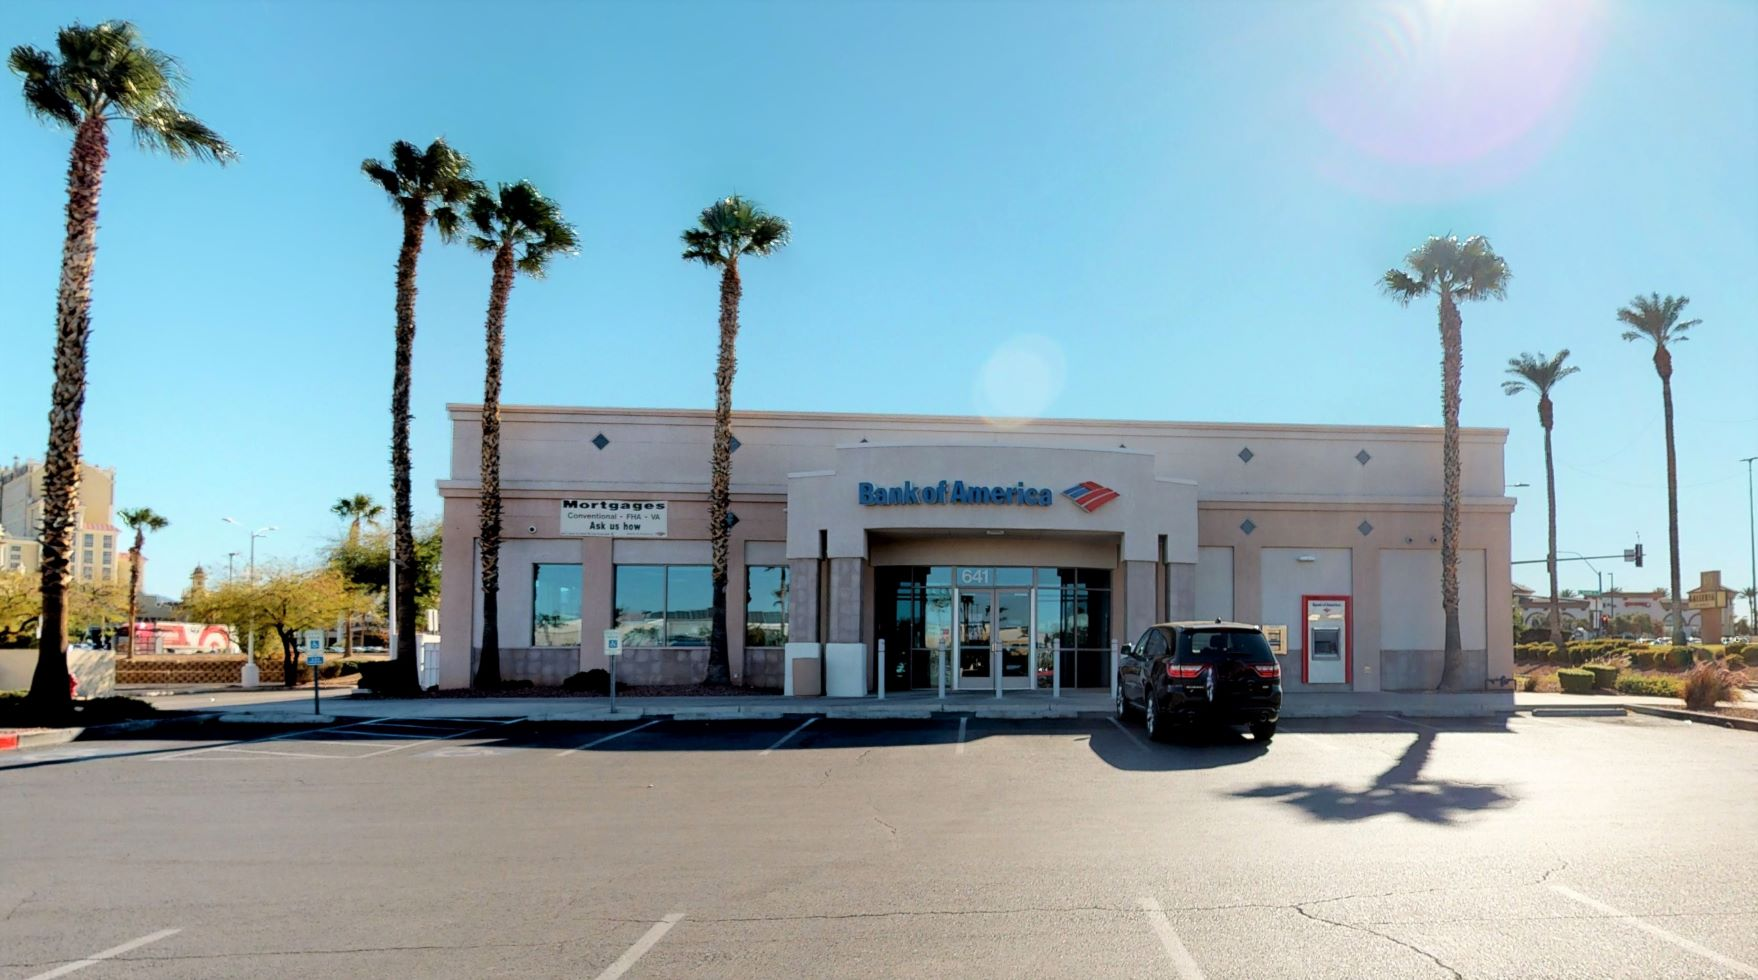 Bank of America financial center with drive-thru ATM | 641 Mall Ring Cir, Henderson, NV 89014